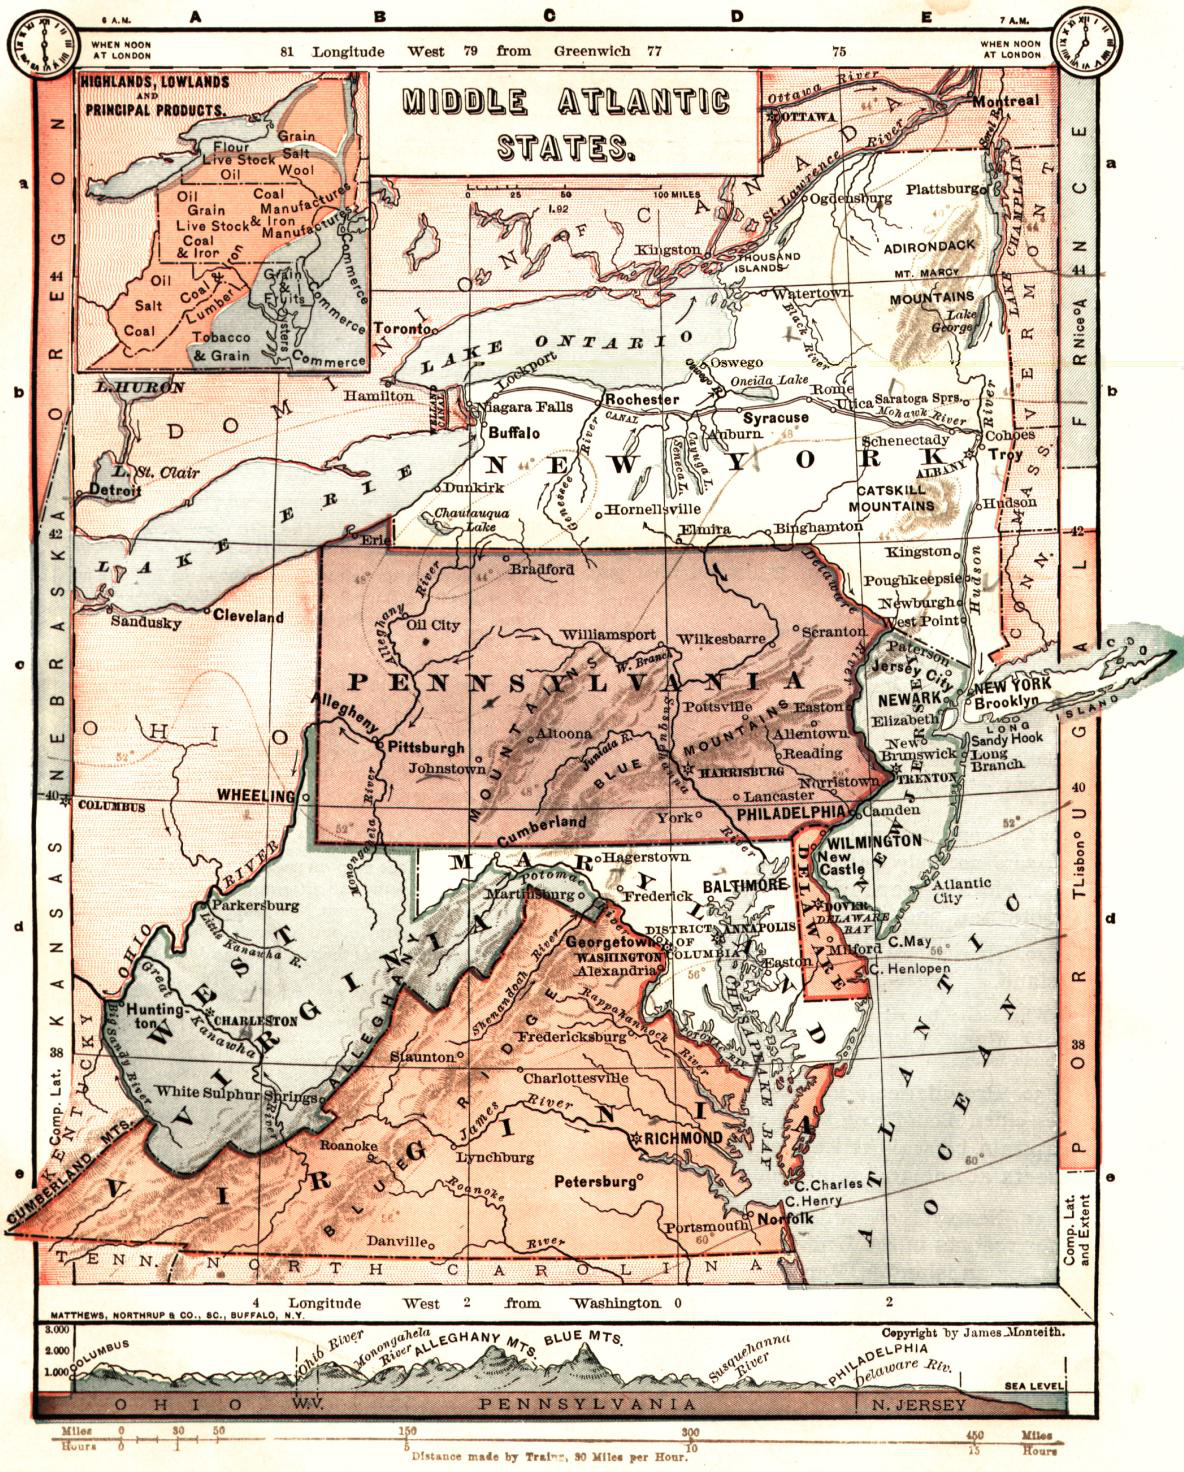 Map Of Middle Atlantic States : middle, atlantic, states, File:Middle, Atlantic, States, Monteith, Map.jpg, Wikimedia, Commons